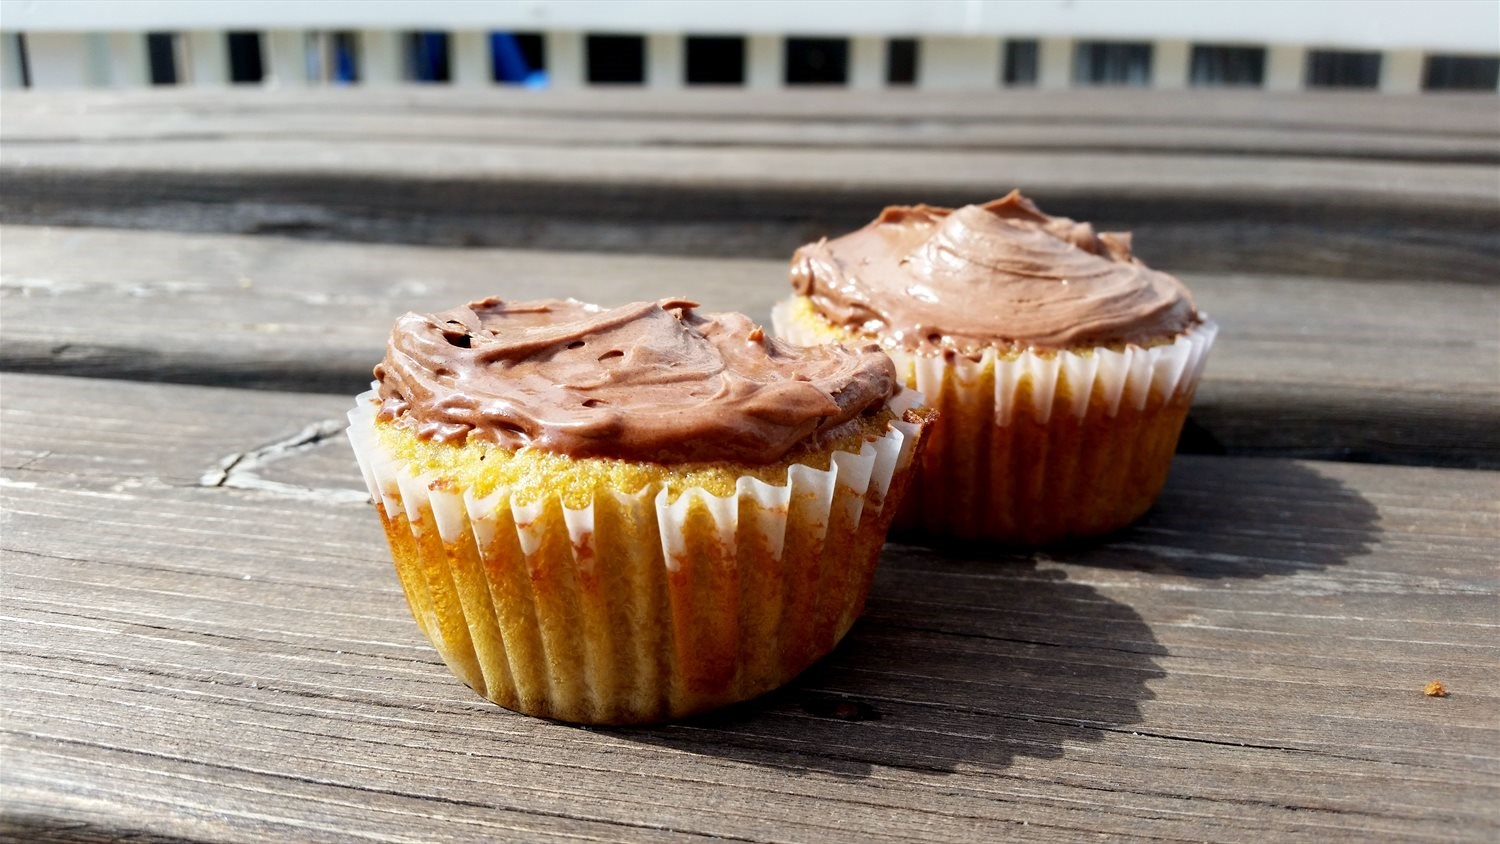 Paleo Cupcakes with Chocolate Frosting